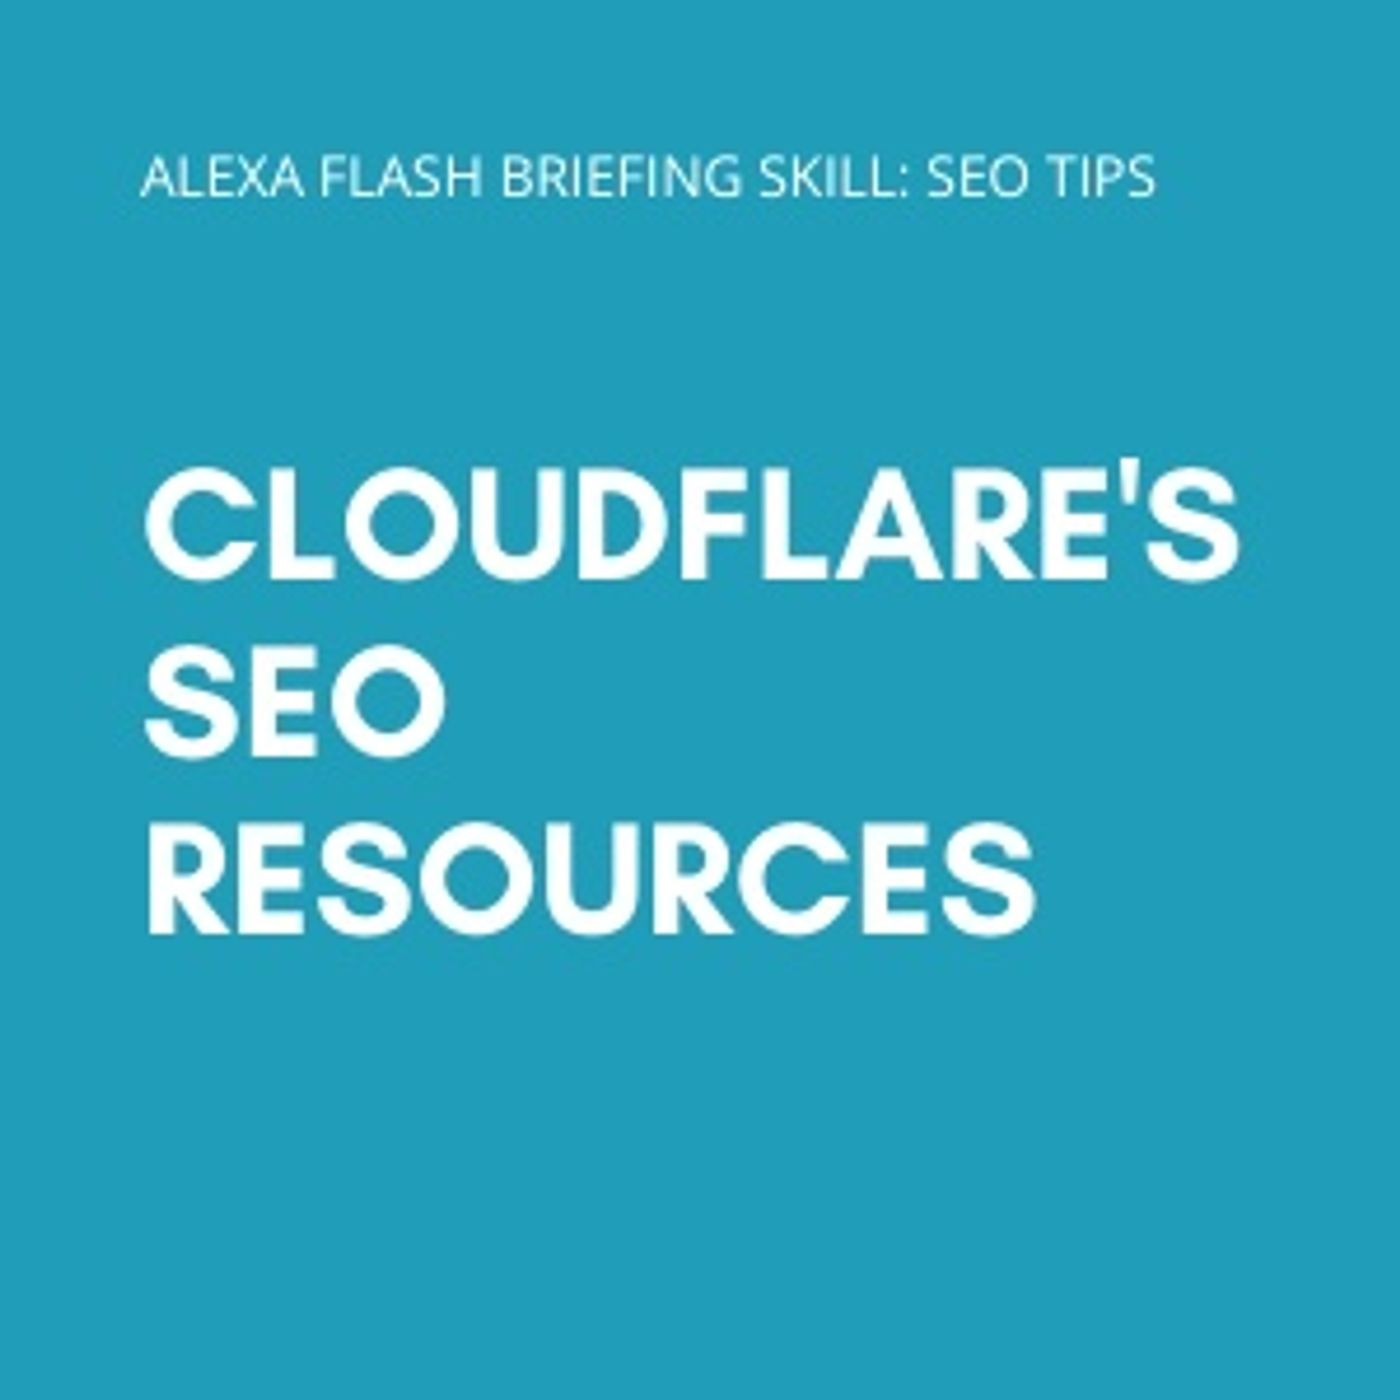 Cloudflare's SEO resources